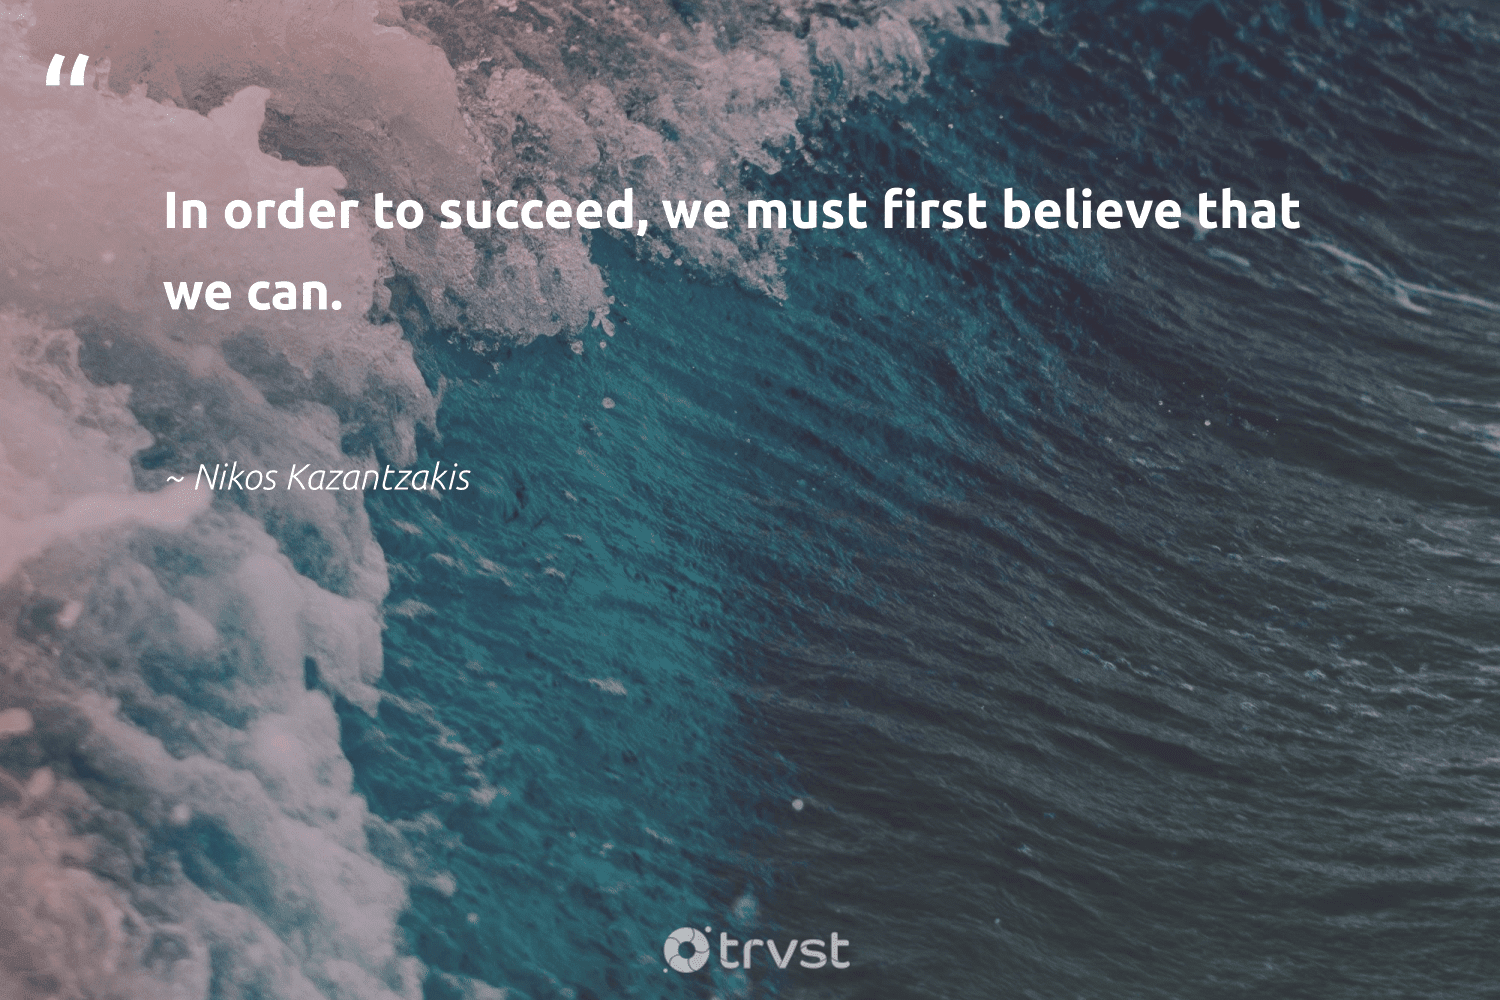 """""""In order to succeed, we must first believe that we can.""""  - Nikos Kazantzakis #trvst #quotes #softskills #thinkgreen #begreat #bethechange #futureofwork #changetheworld #nevergiveup #socialchange #dotherightthing #planetearthfirst"""